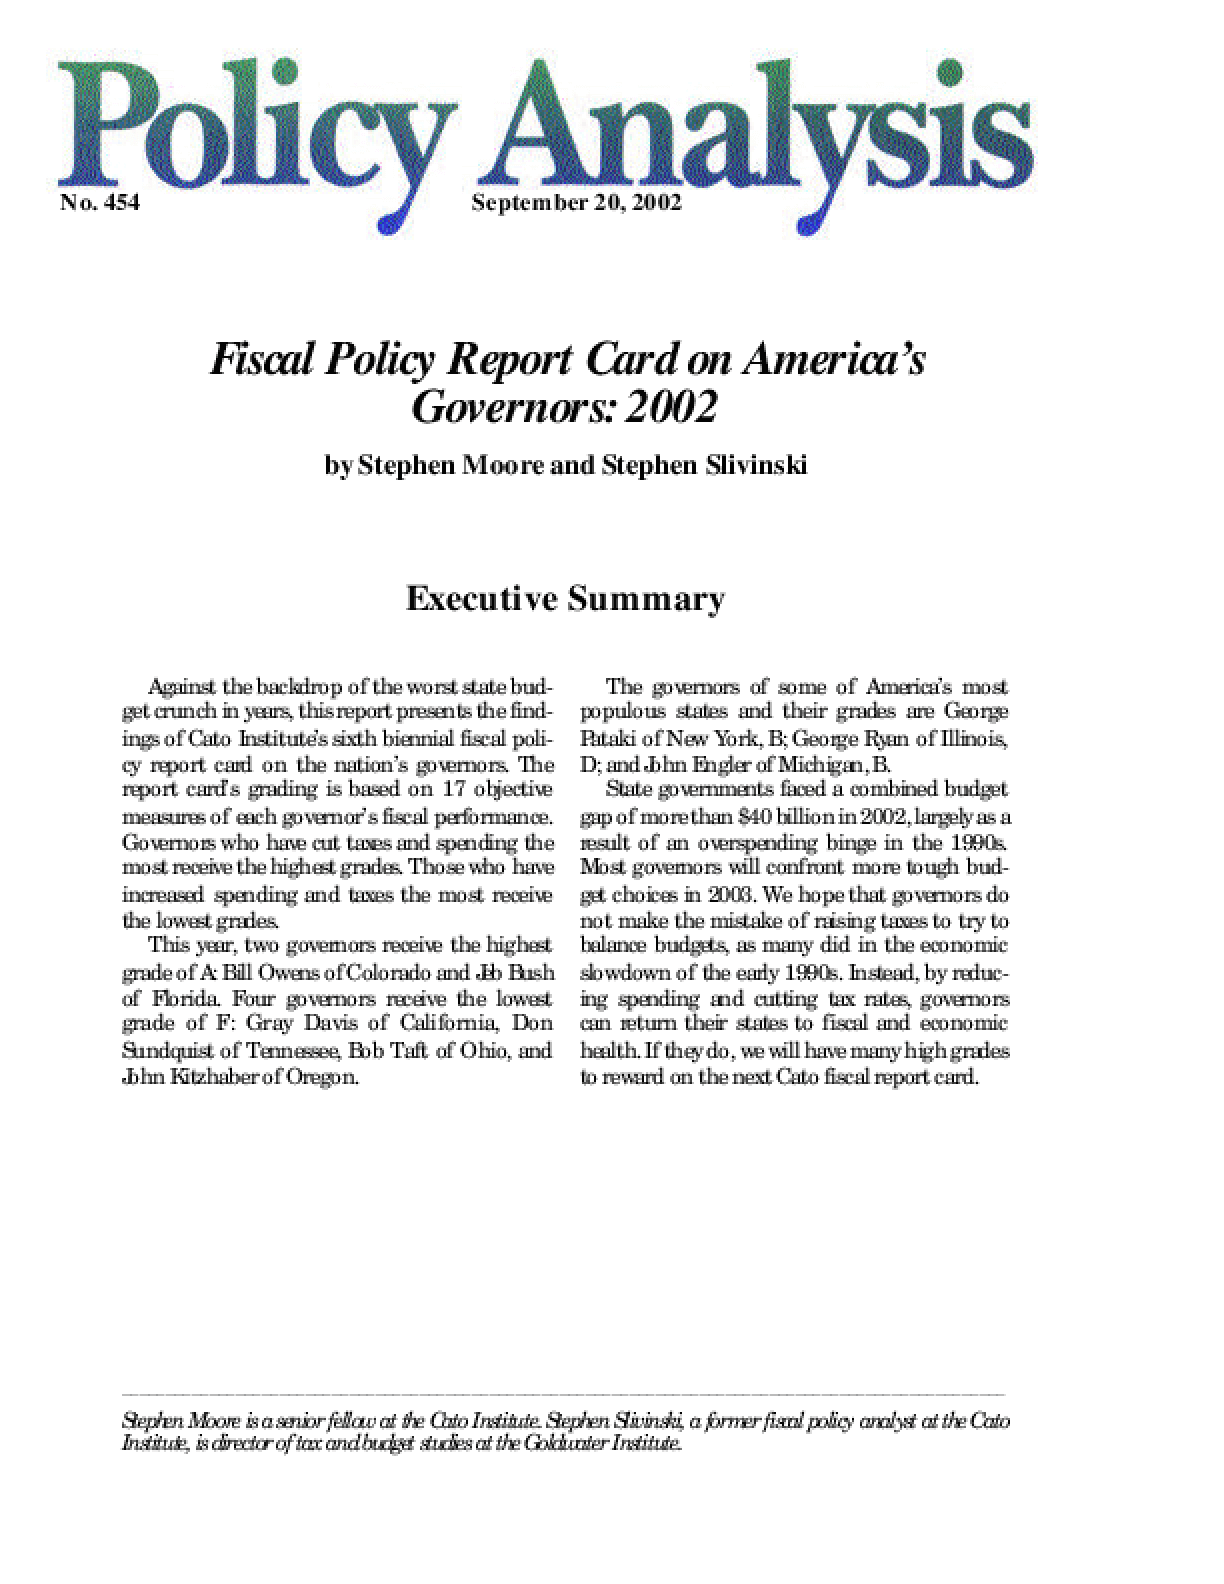 Fiscal Policy Report Card on America's Governors: 2002